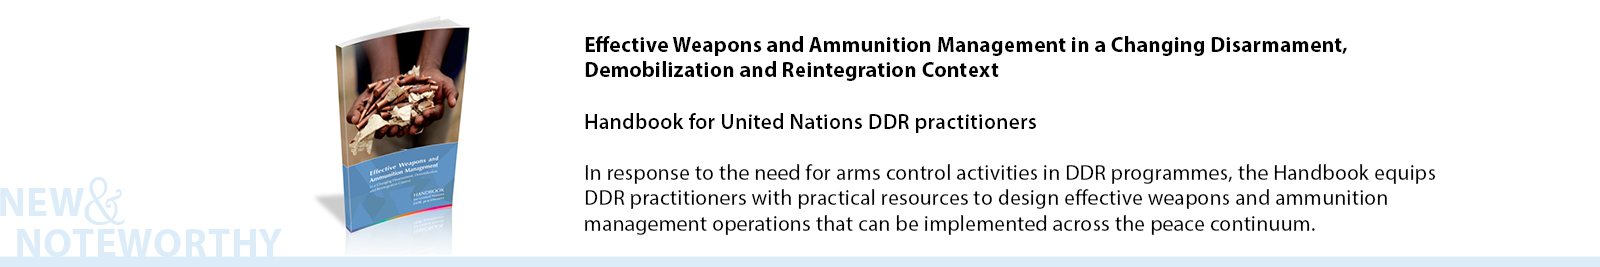 The Handbook builds on good practices and innovative approaches developed in the field, while taking into consideration the most recent international arms regulation standards. It responds to the greater need for arms control activities in disarmament, demobilization and reintegration (DDR) programmes, including weapons and ammunition management at the community level as part of community violence reduction projects. The material presented here equips DDR practitioners with practical resources to design effective weapons and ammunition management operations that can be implemented across the peace continuum.